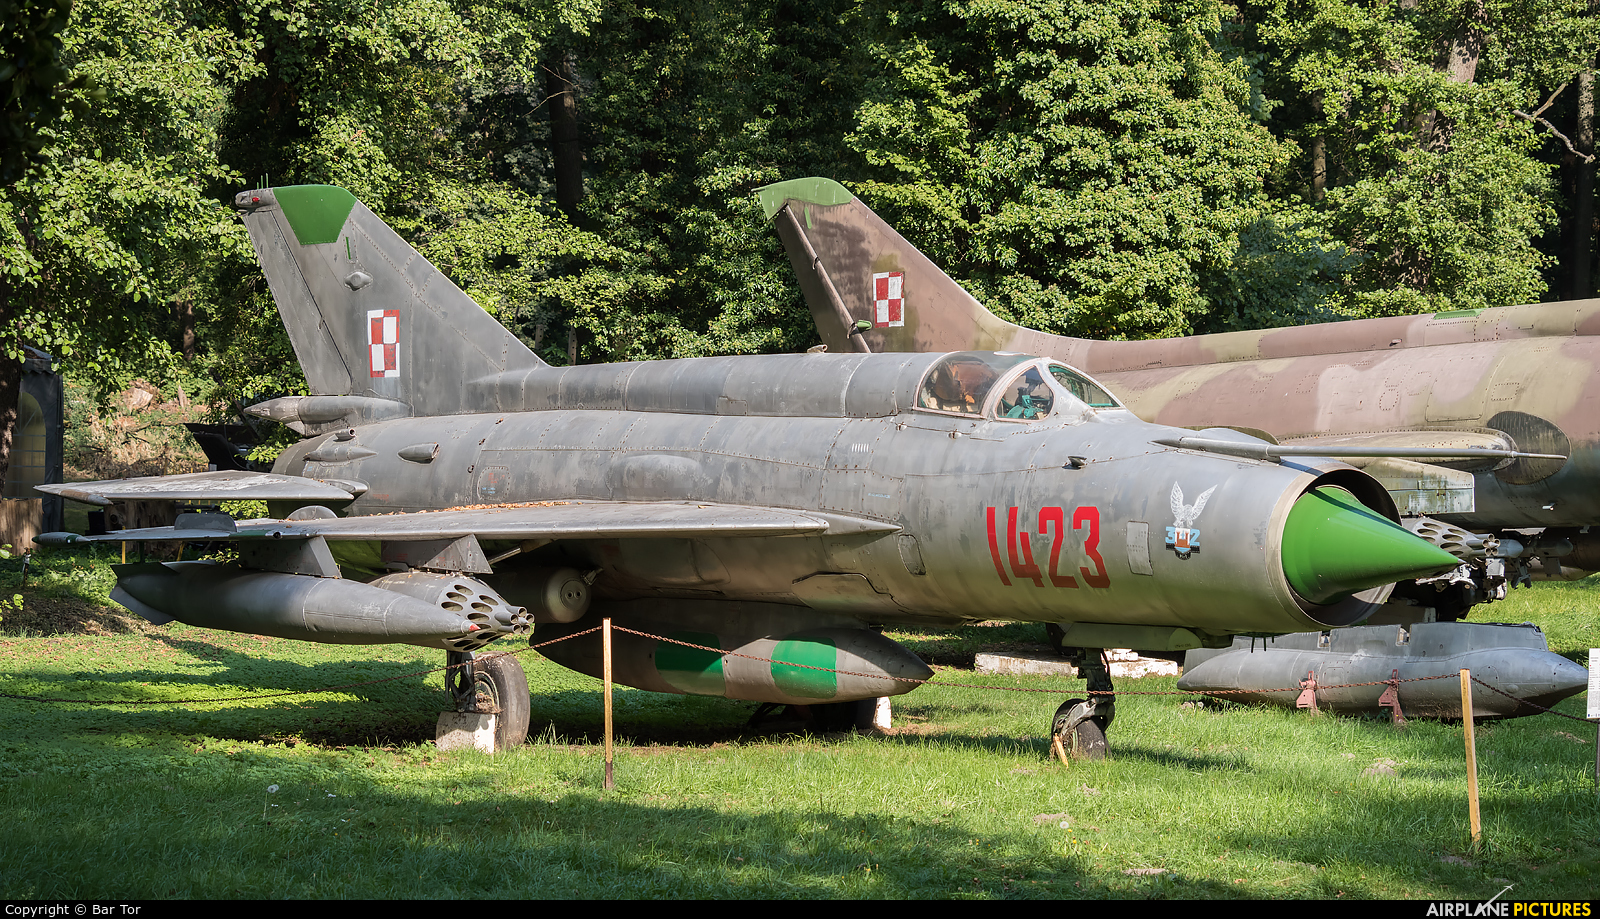 Poland - Air Force 1423 aircraft at Drzonów - Lubuskie Military Museum